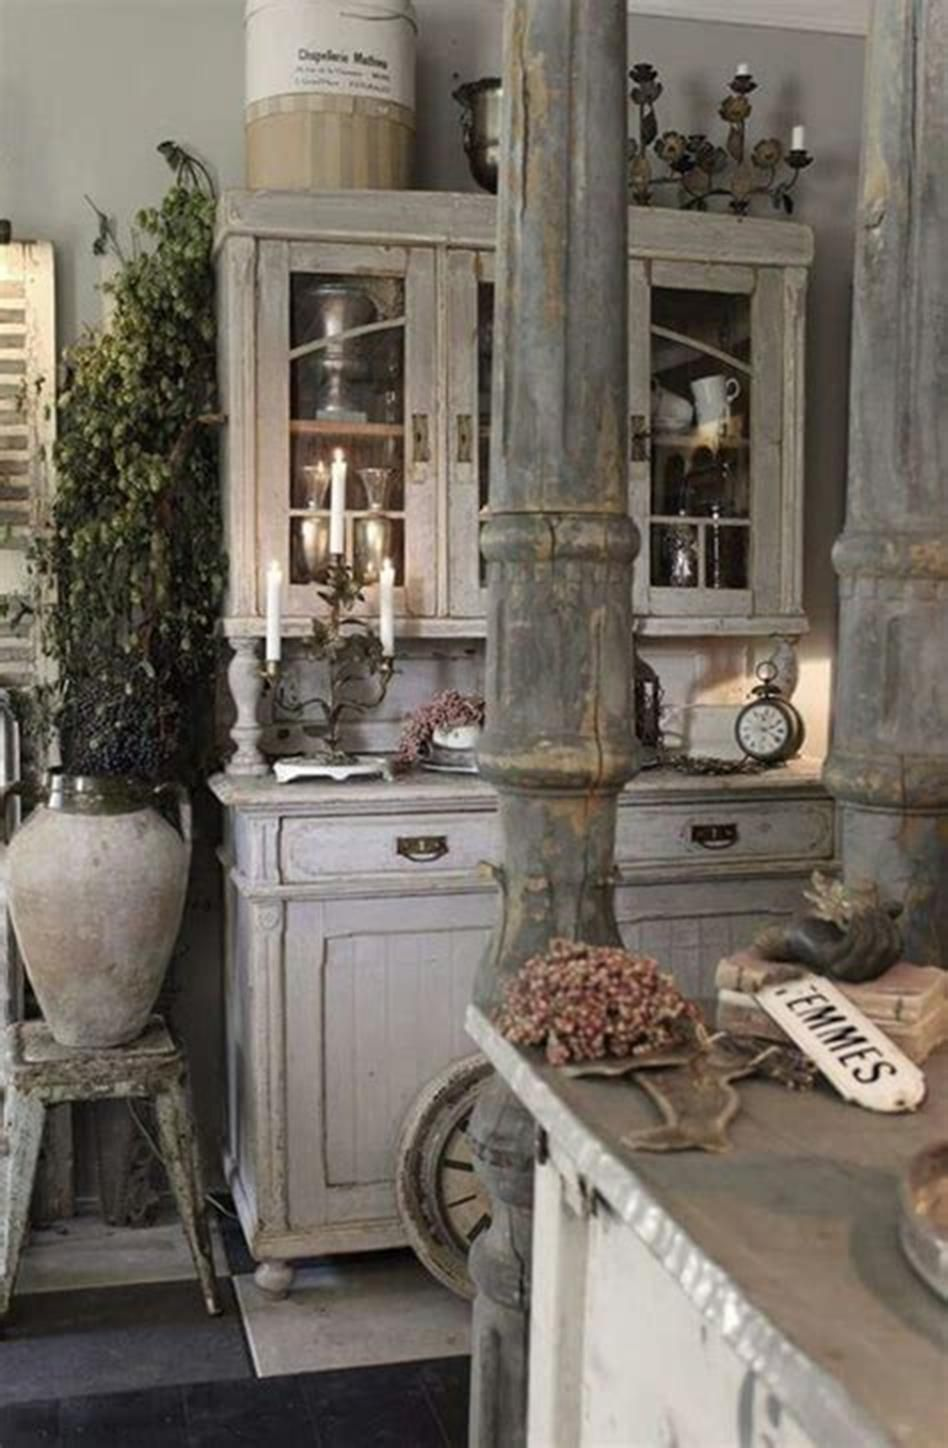 40 Amazing Shabby Chic Country Kitchen Decorating Ideas For 2019 2 Country Kitchen Decor French Country Decorating Kitchen Shabby Chic Kitchen